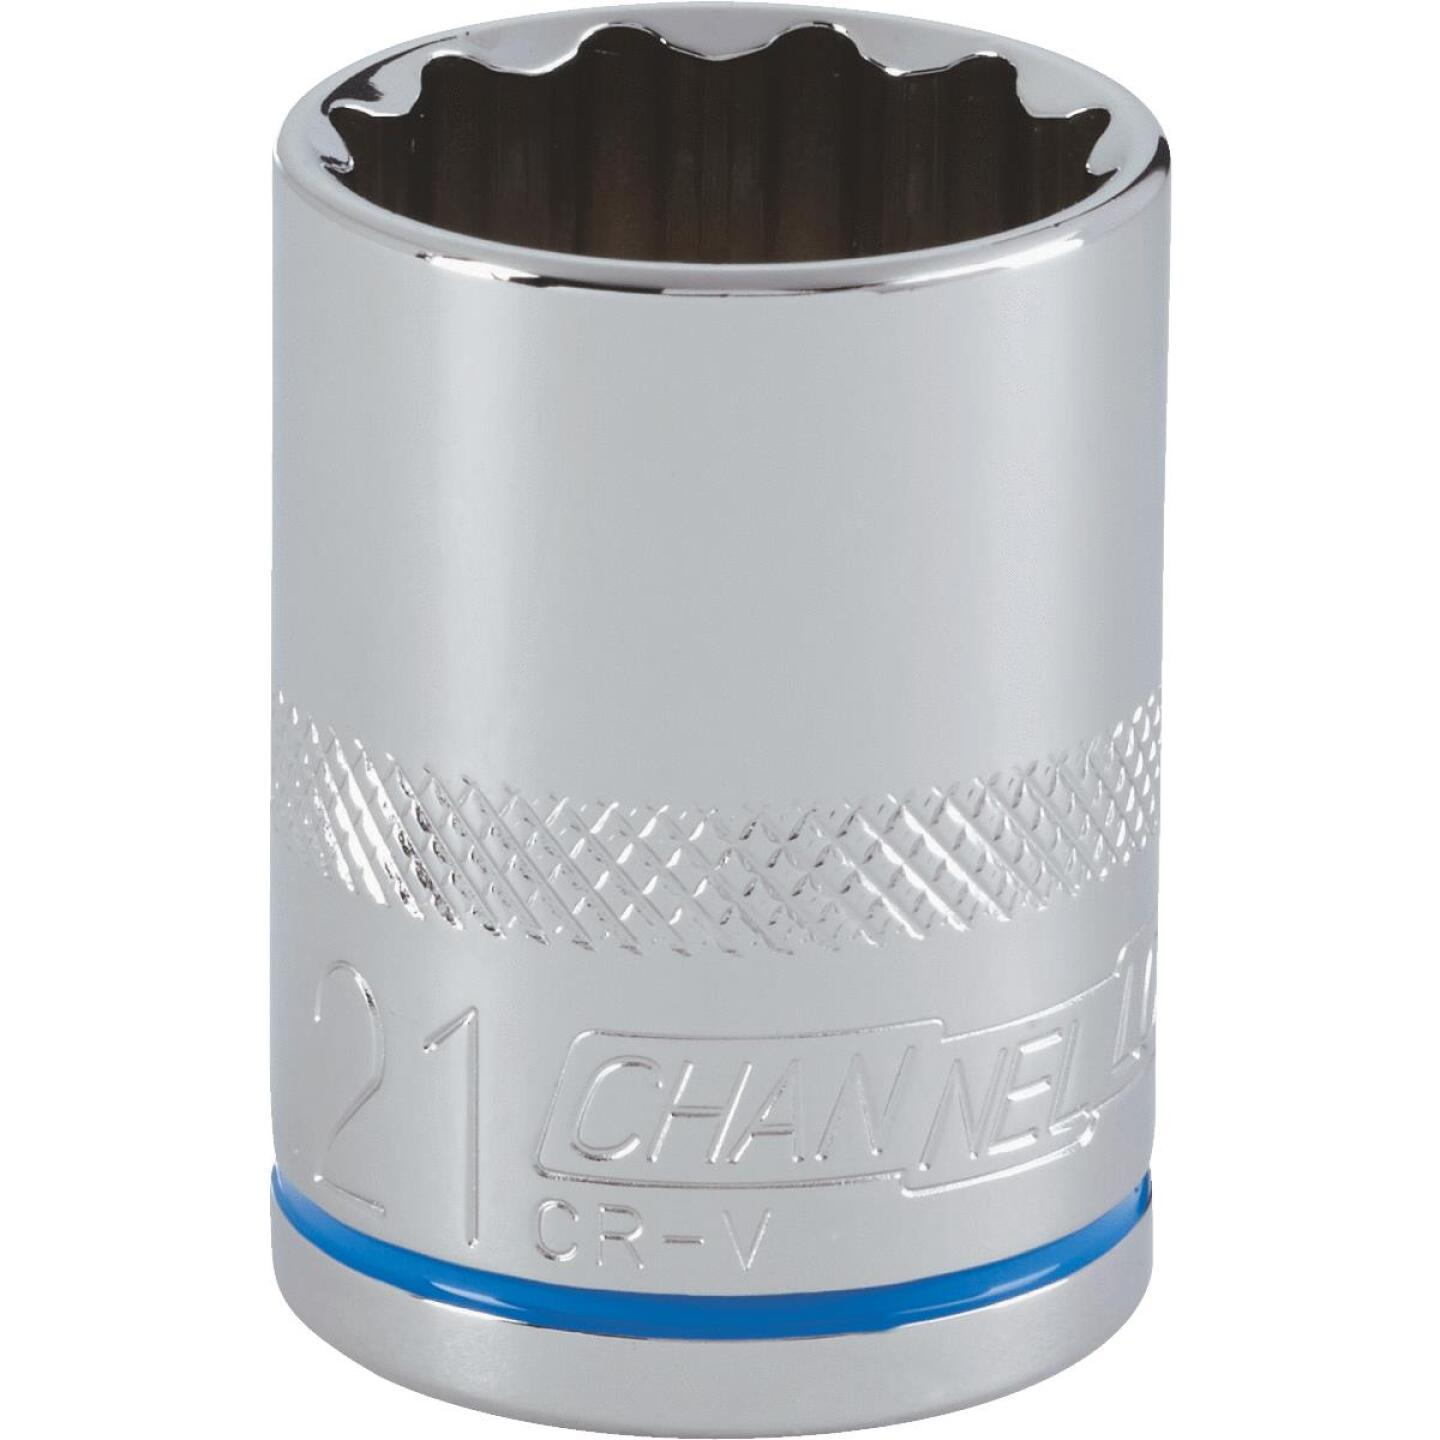 Channellock 1/2 In. Drive 21 mm 12-Point Shallow Metric Socket Image 1